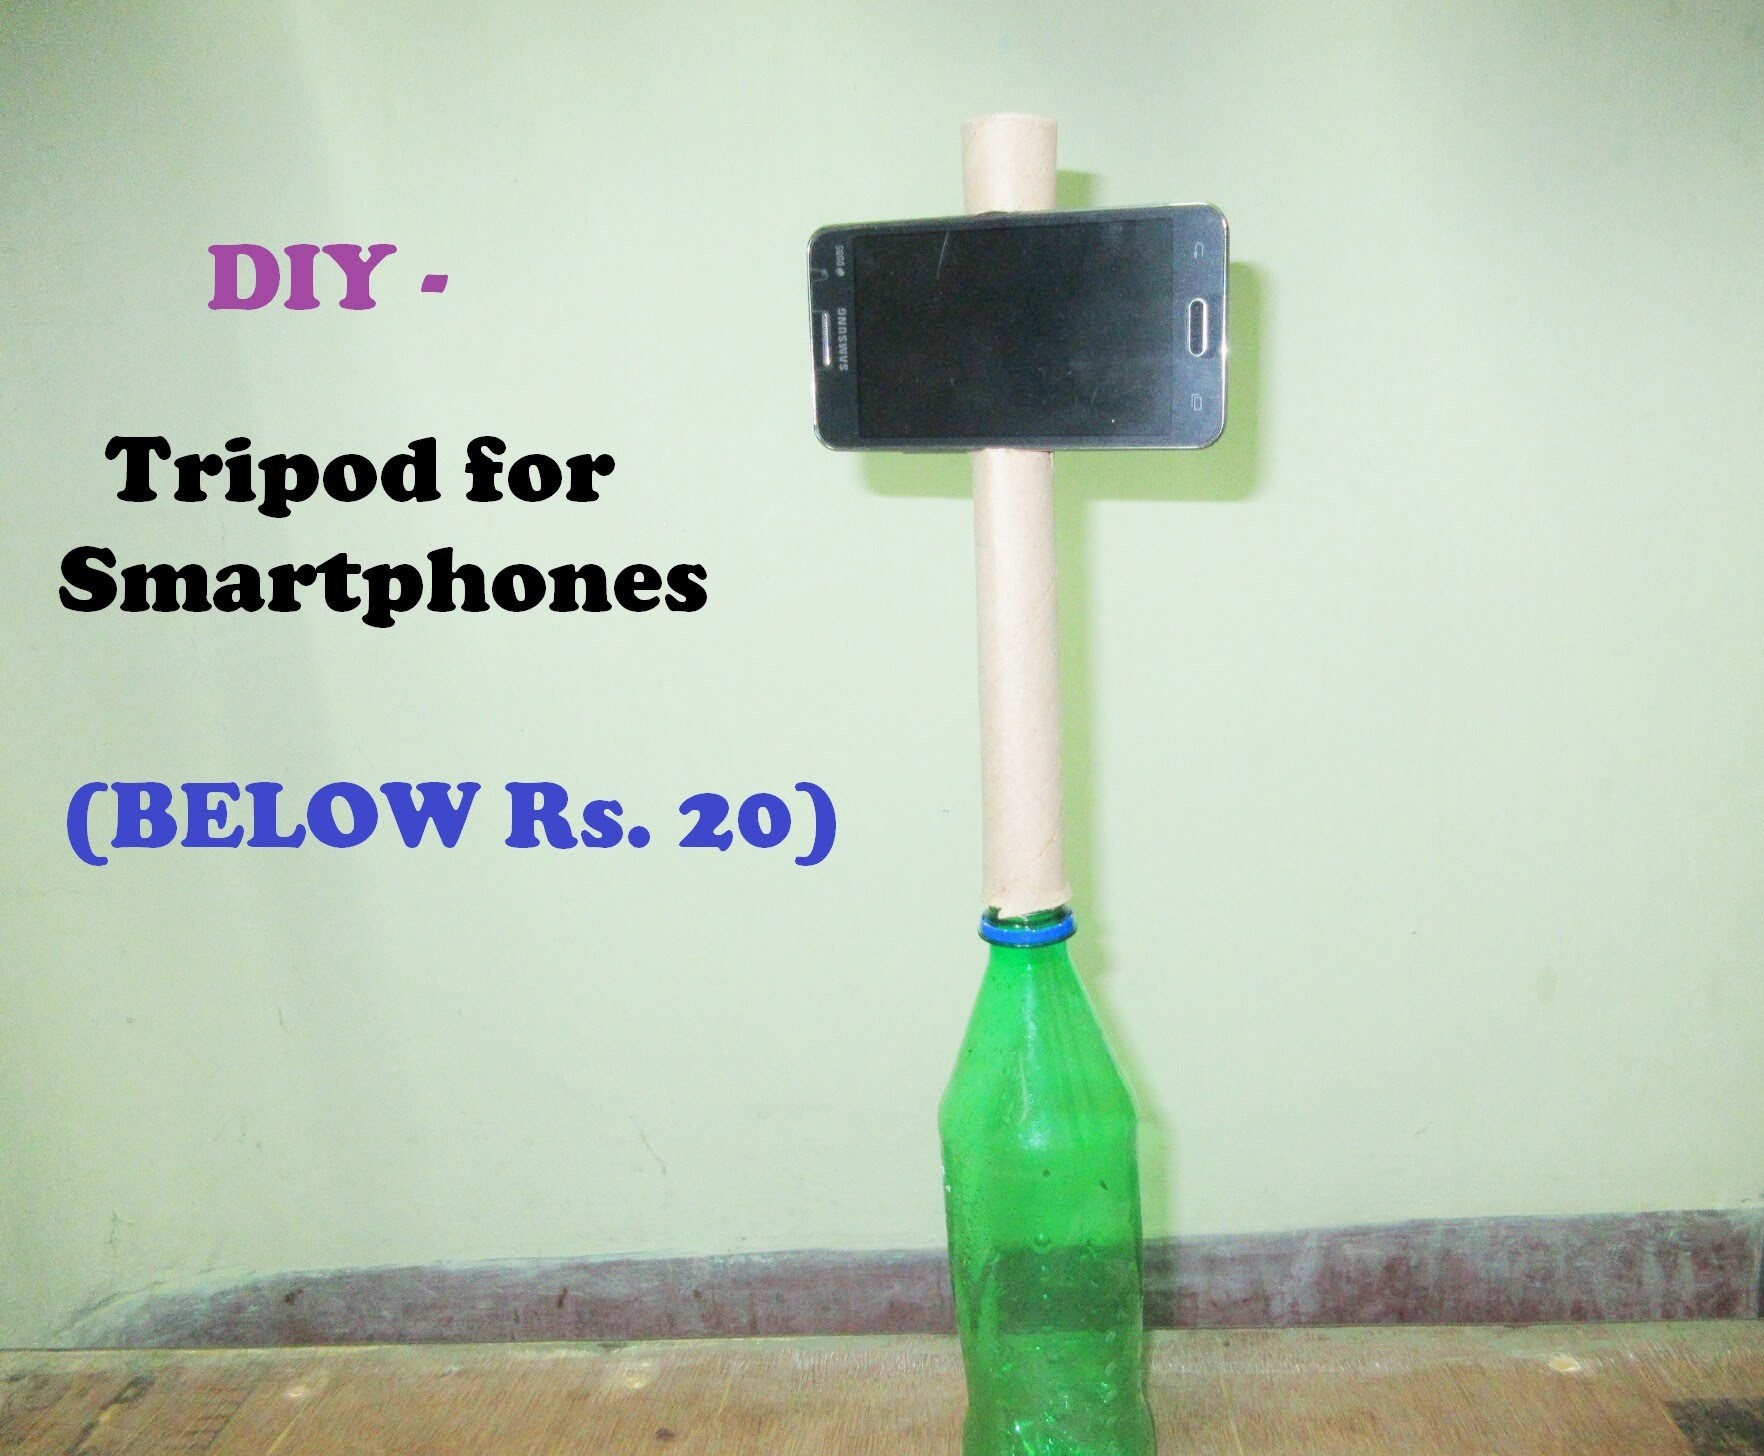 How to make a tripod at home   DIY-Tripod for smartphones   Below Rs. 20